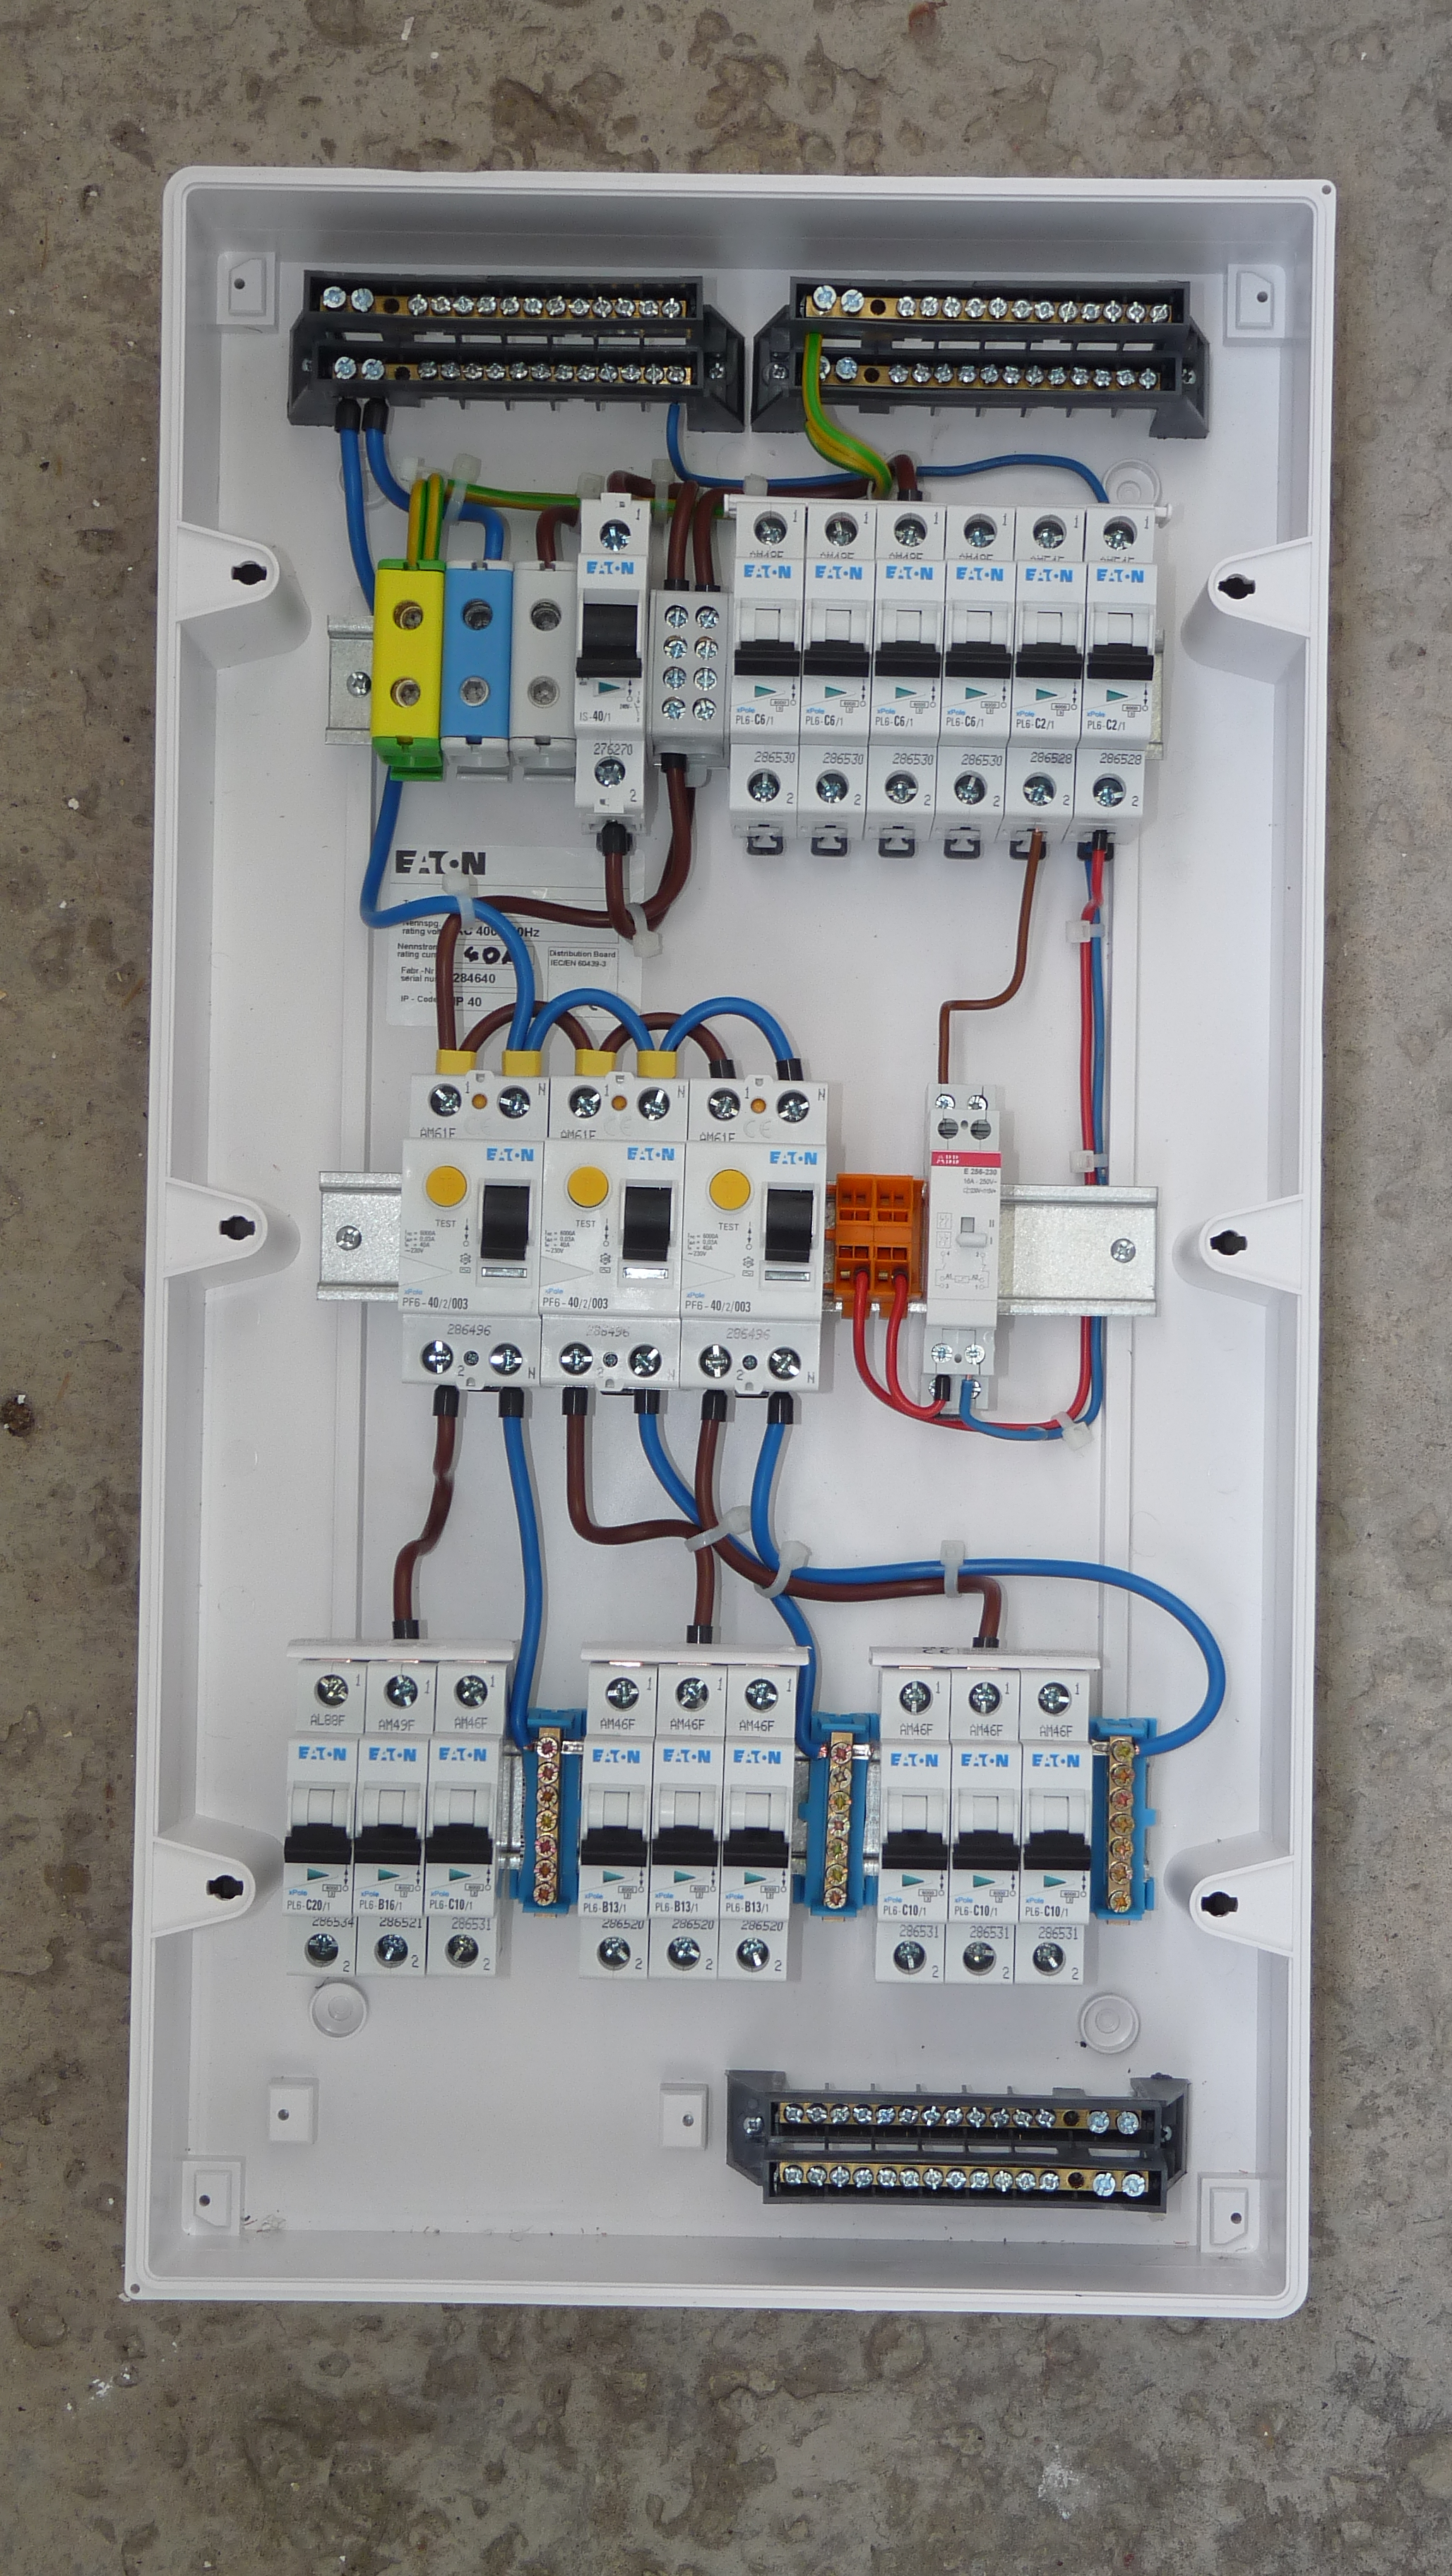 Home Fuse Box Replacement Cost : New fuse box for house cost wiring diagram images